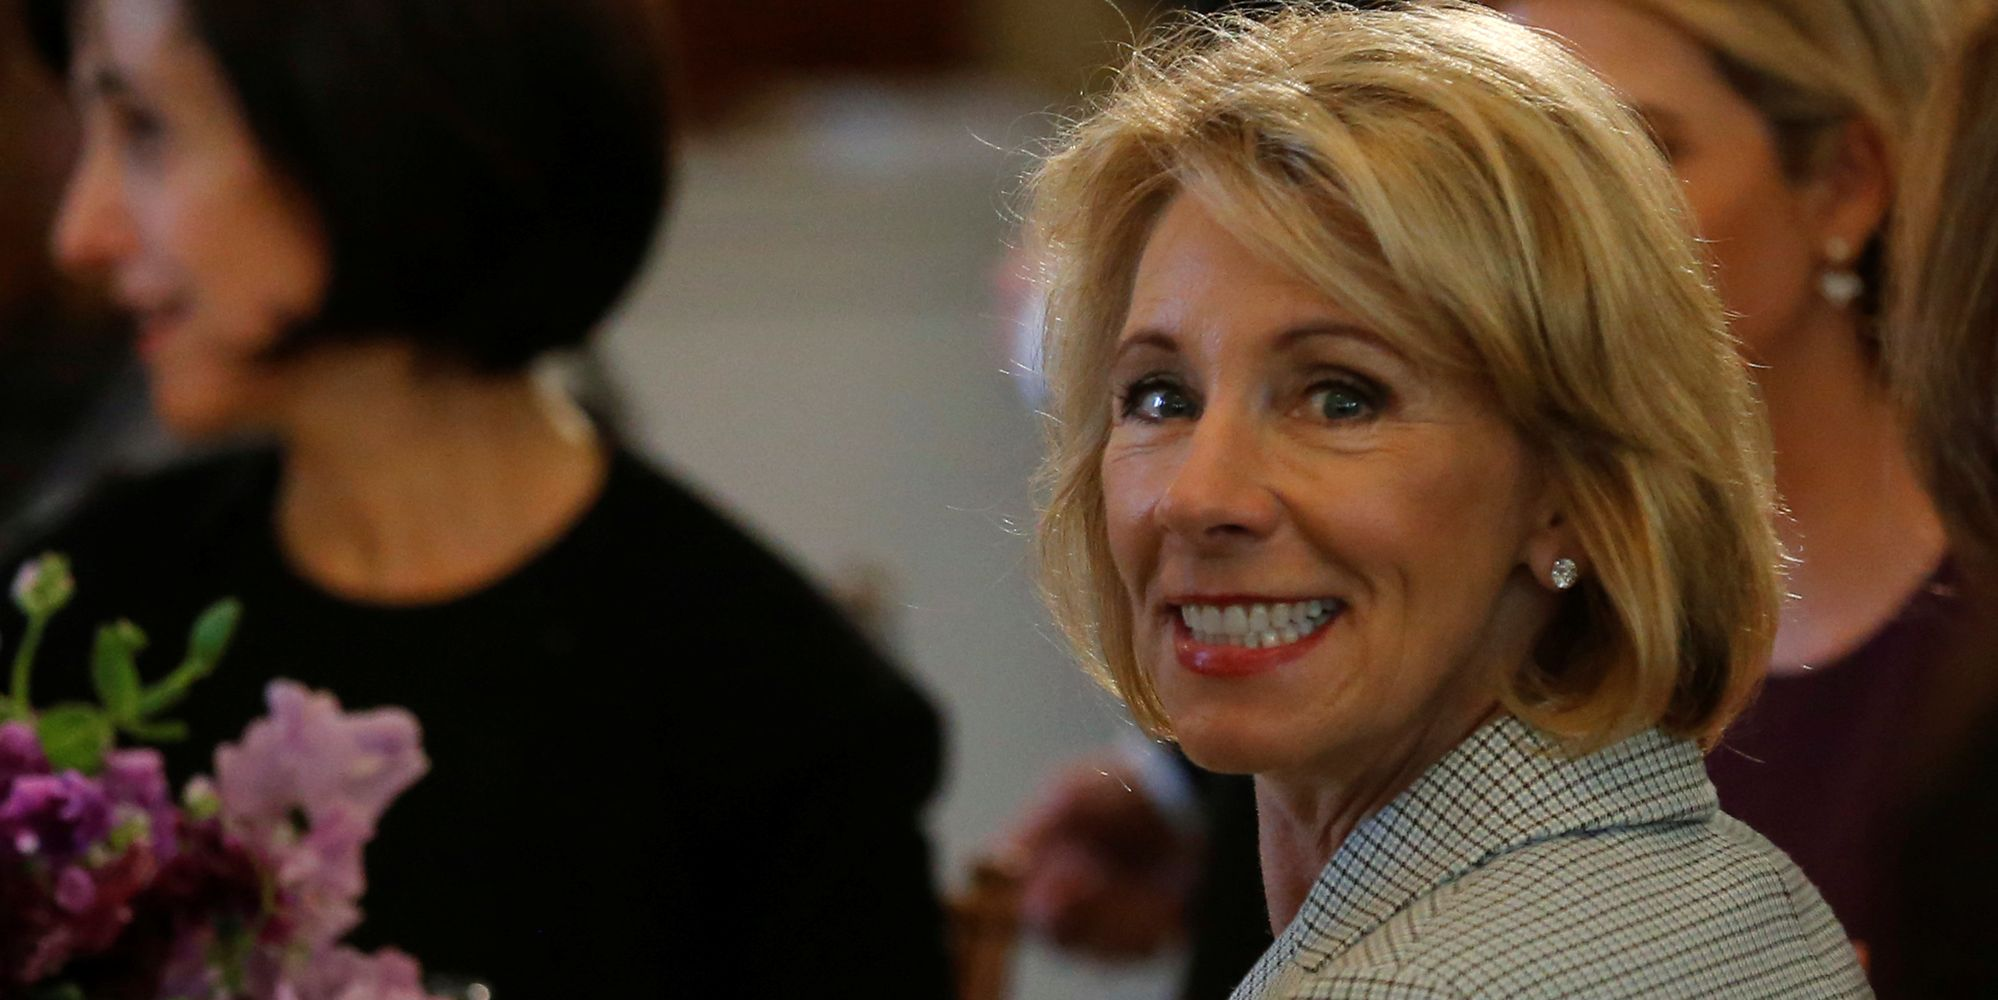 Welcome To The Private Evangelical School Of Betsy DeVos' Dreams